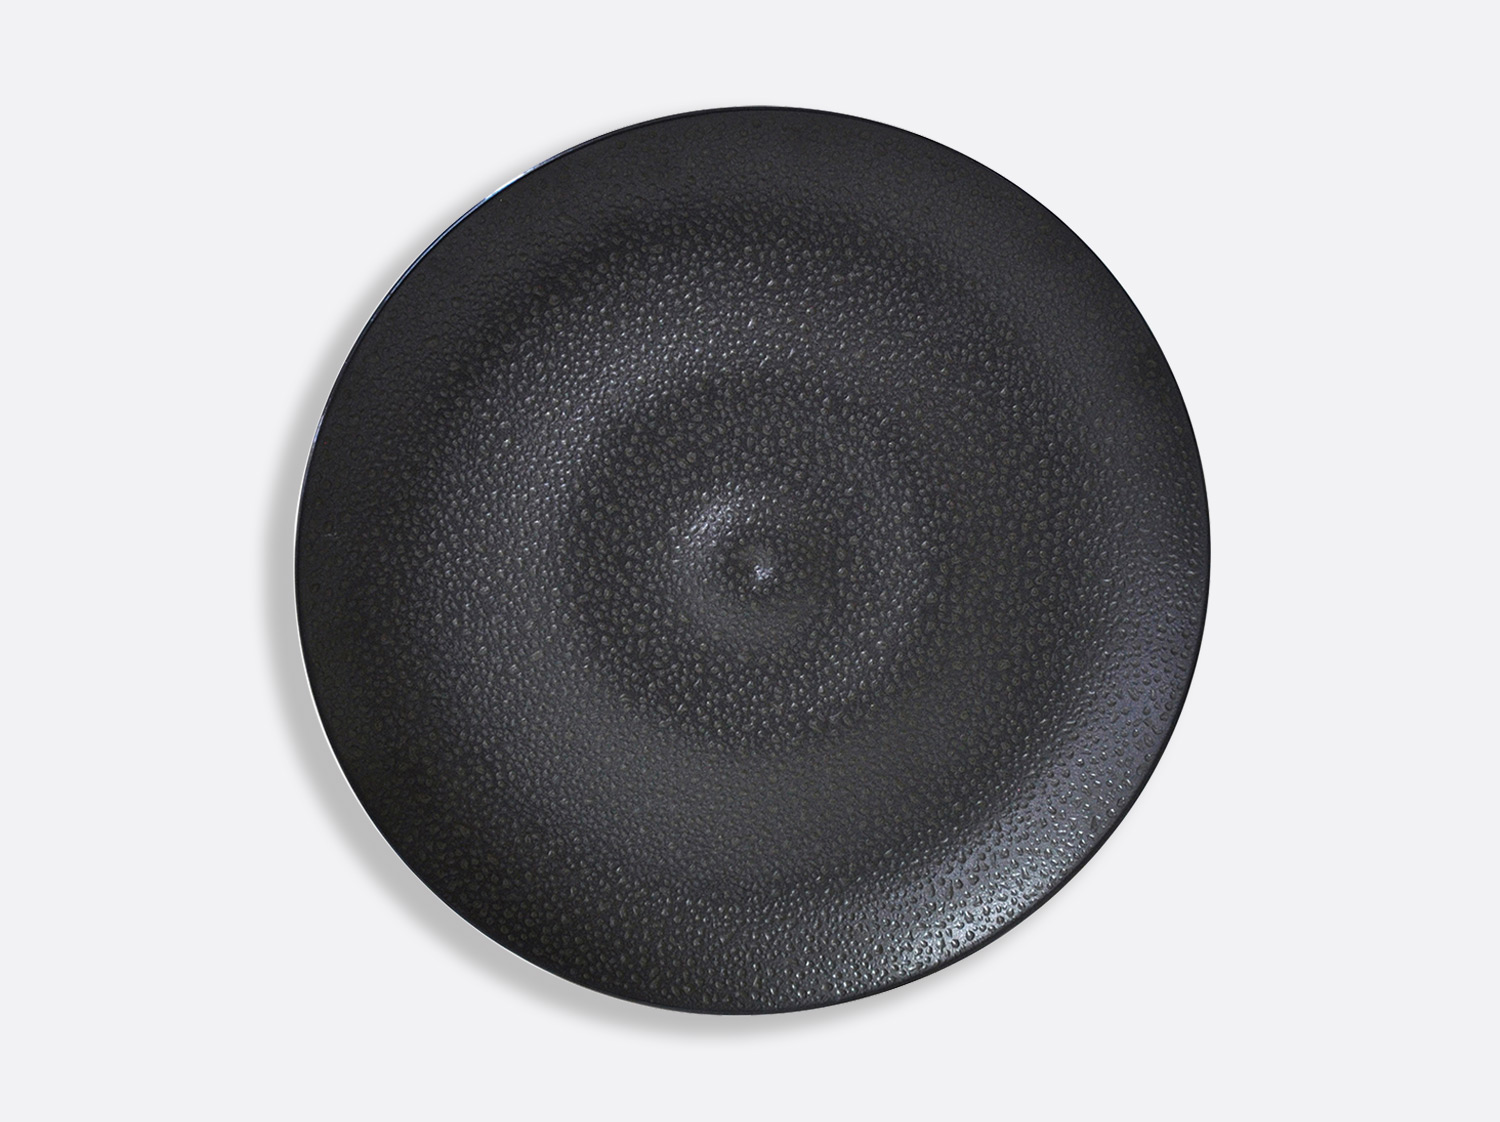 "China Plate 12.2"" of the collection Bulle sable noir 